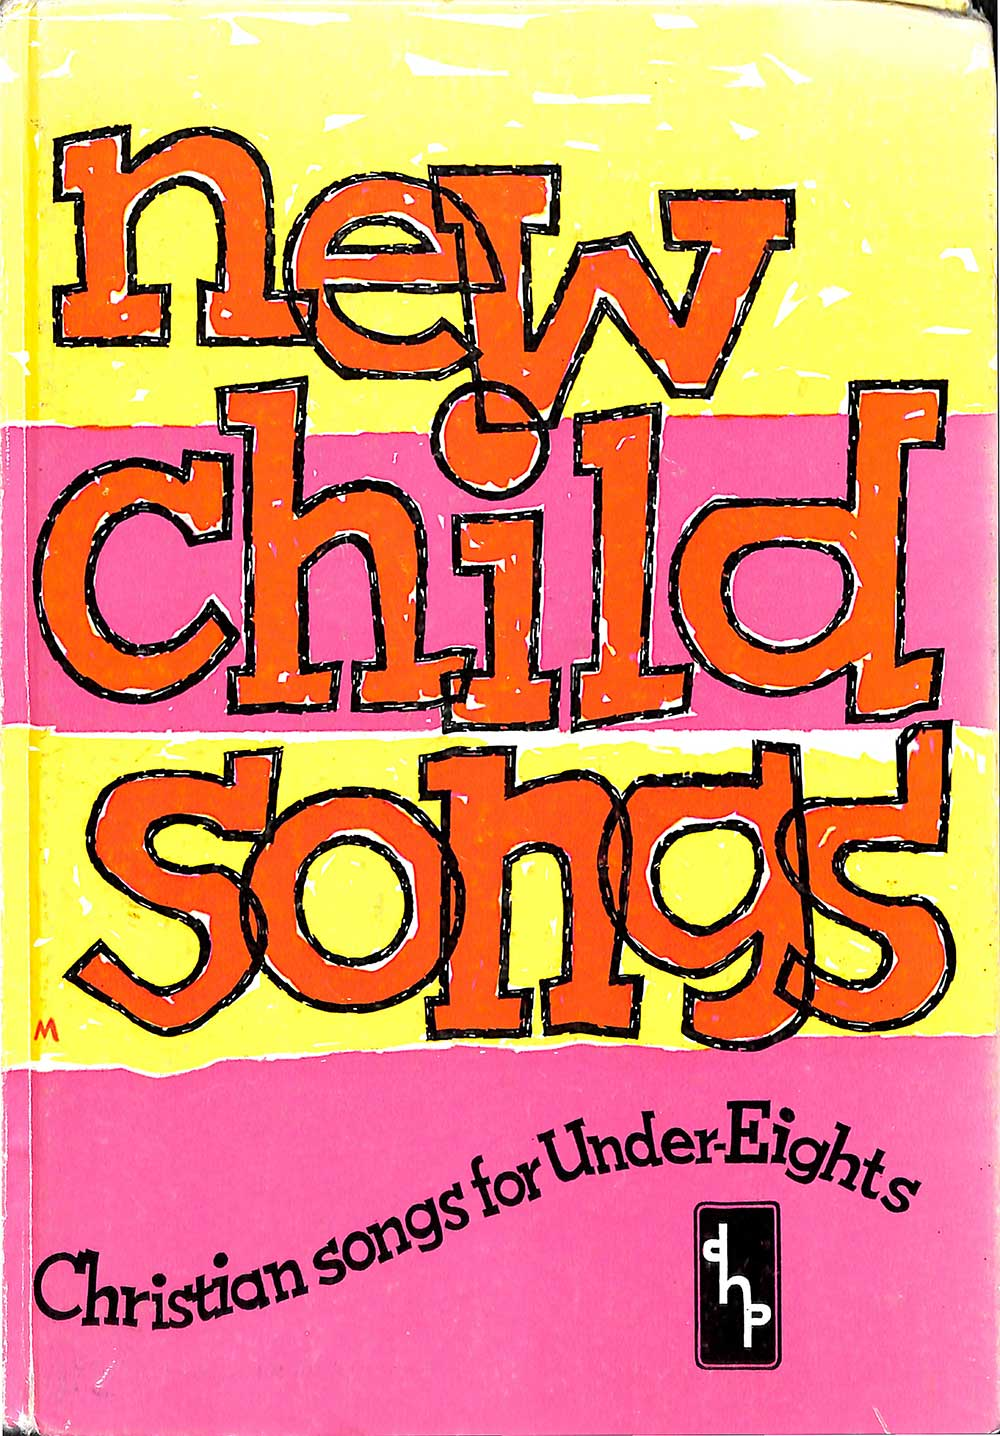 Dorothy R. Wilton and Pauline Buzzing (compilers). <em>New child songs: Christian songs for under-eights.</em> Nutfield [England]: Denholm House, 1973.